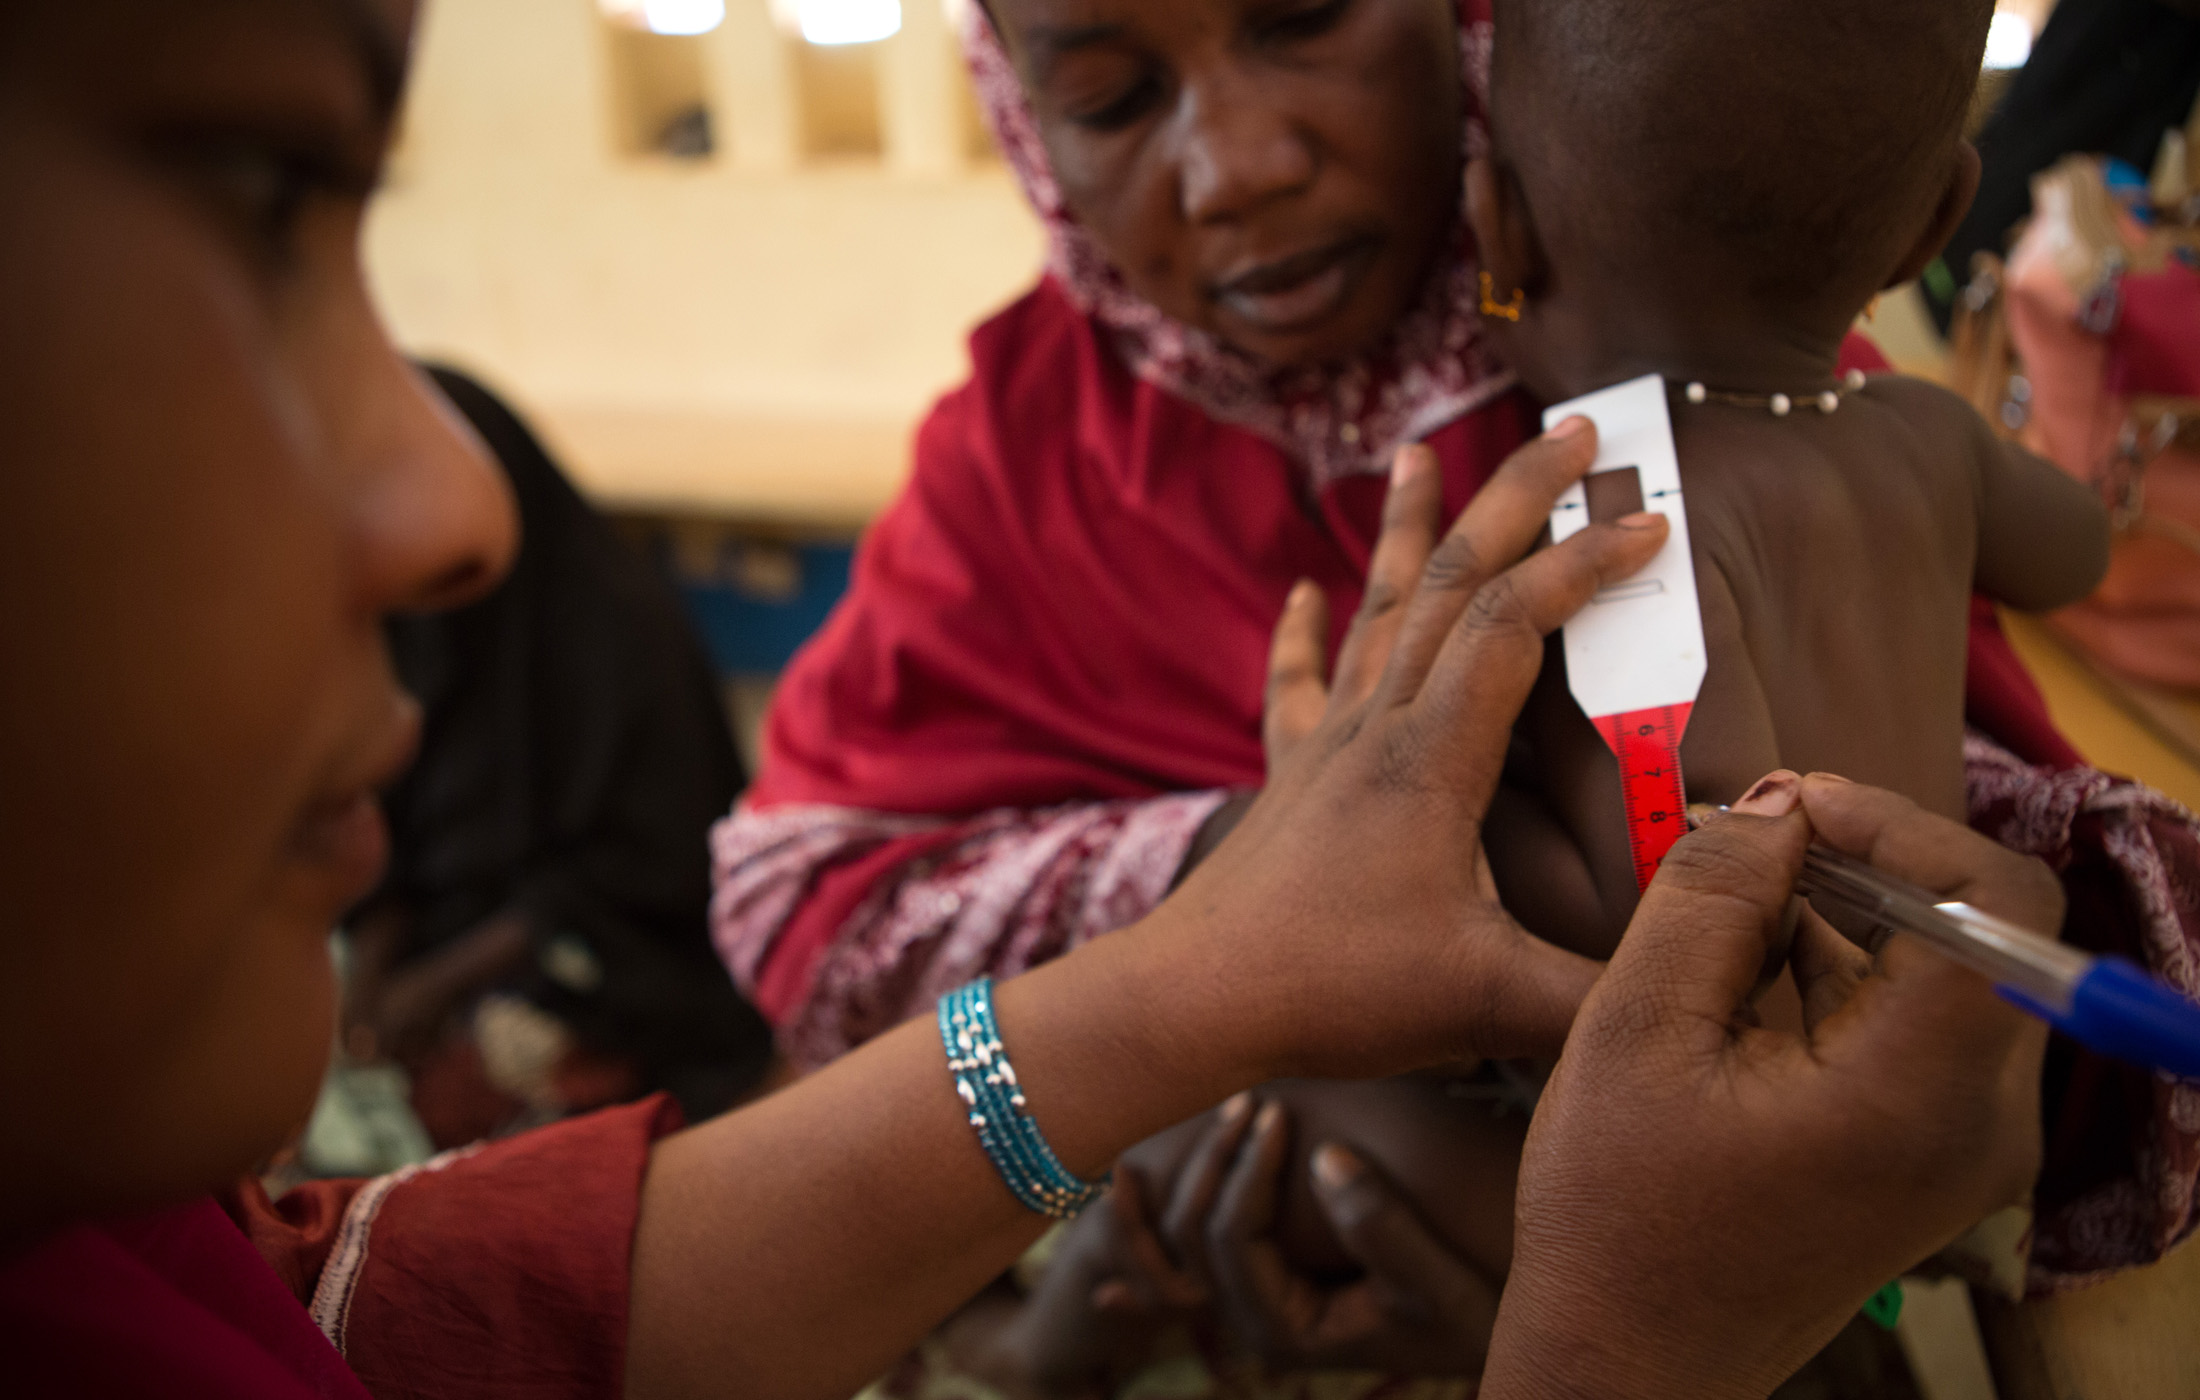 A nurse records a child's weight and height during a consultation at the referral health center in Gao, Mali.  WFP, in partnership with Action Contre la Faim (ACF), provide consultations, care and medication to malnourished children and pregnant women i